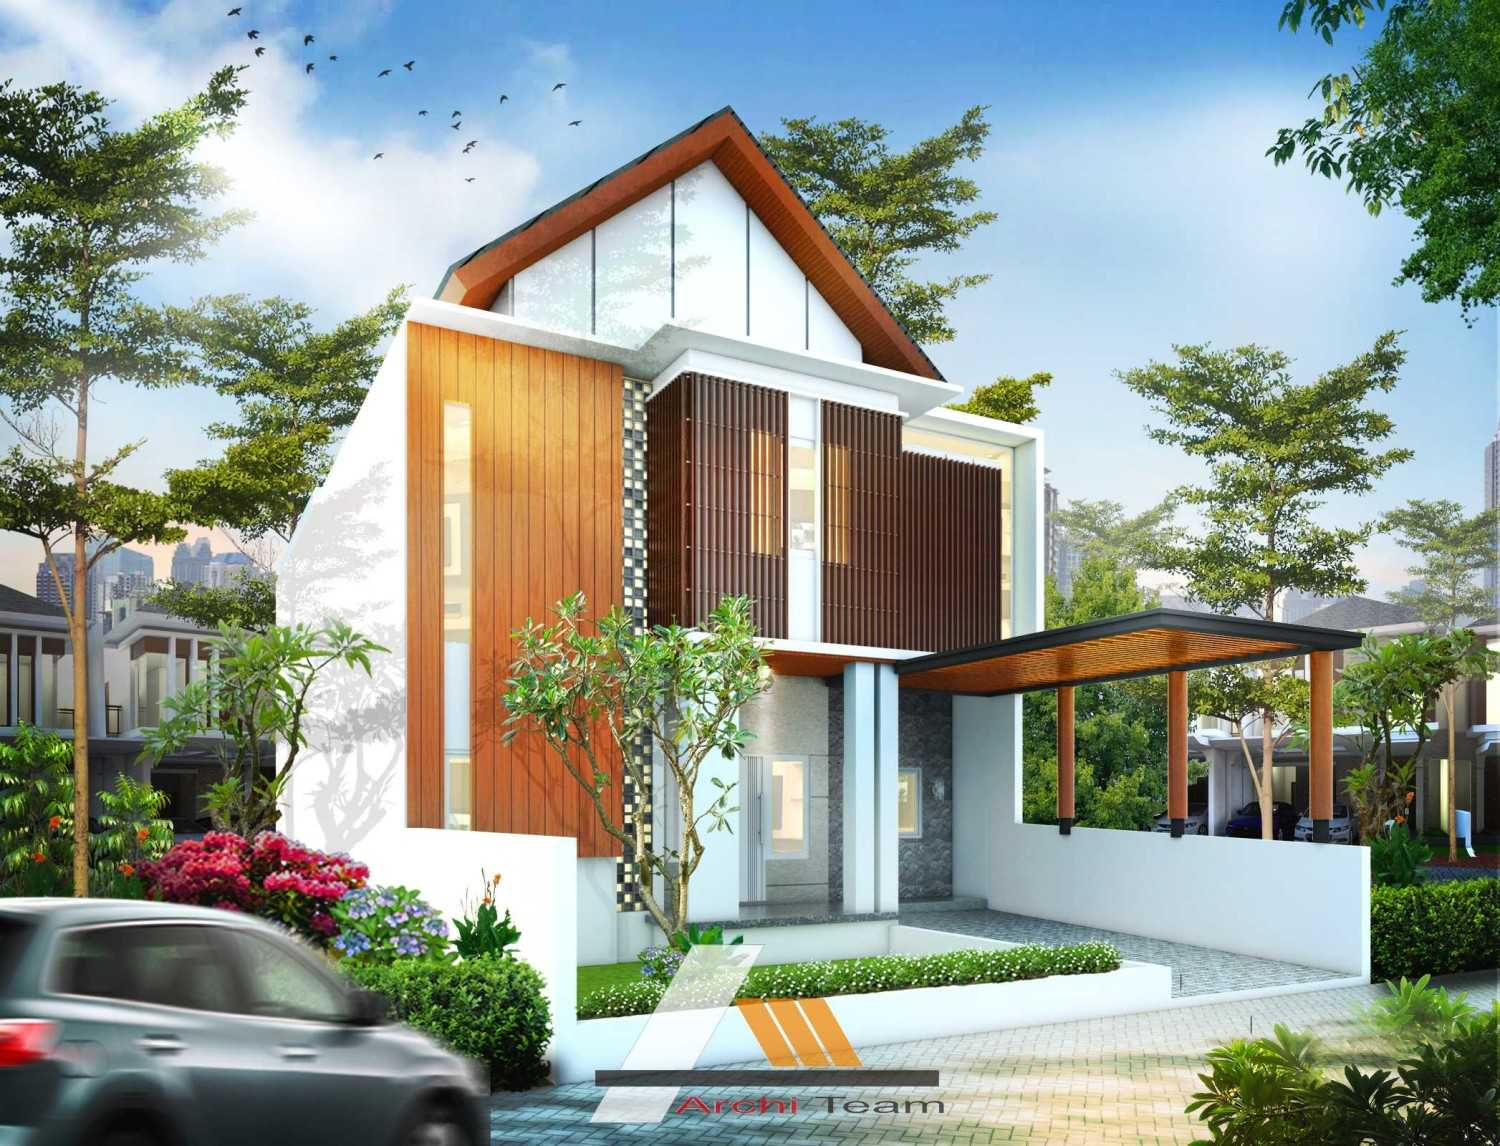 Dwy Ariyanto Contemporary I House Renovation Tambun, Tambun Sel., Bekasi, Jawa Barat, Indonesia  Contemporary I House Renovation Contemporary 43442